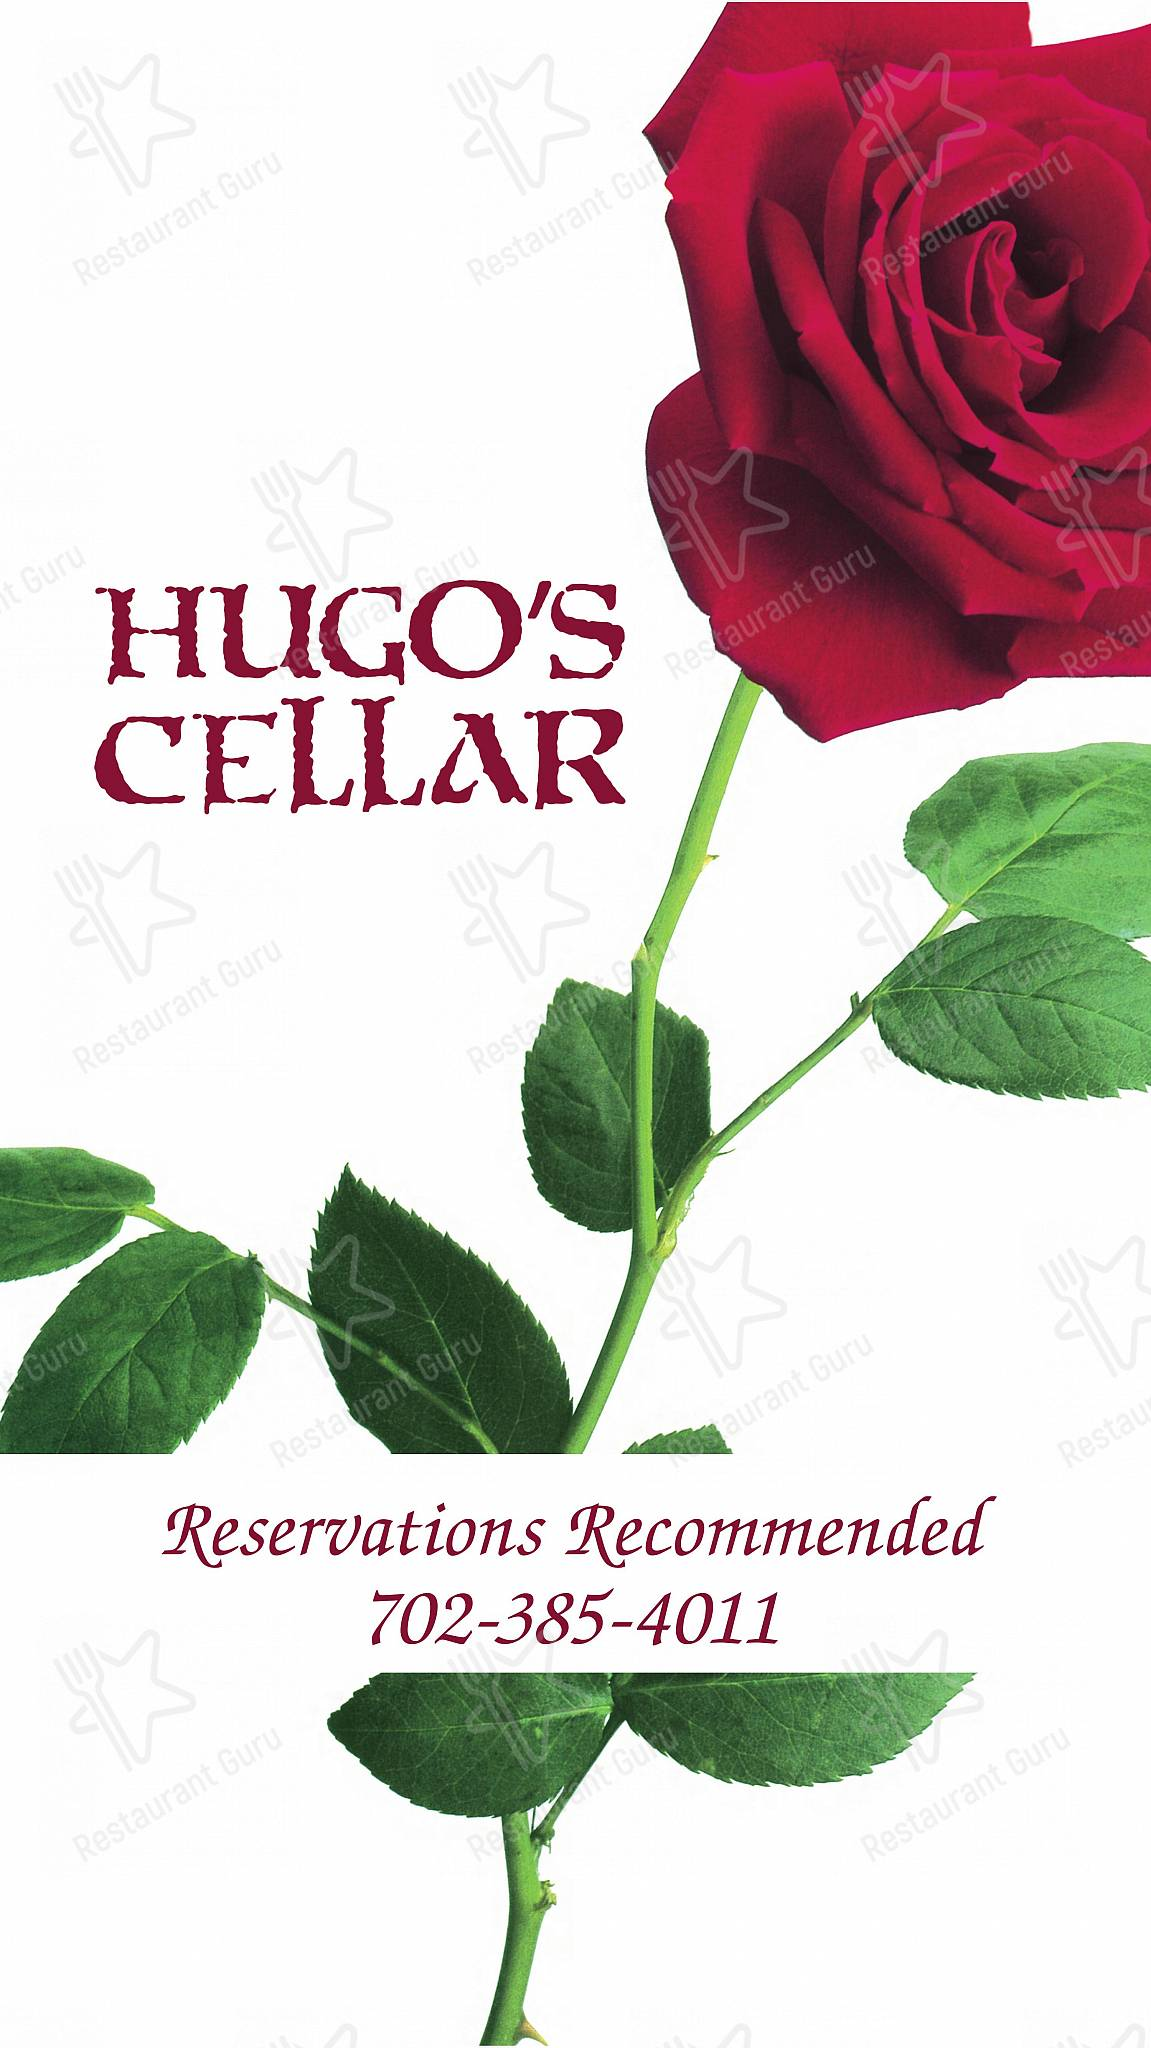 Carta de Hugo's Cellar restaurante